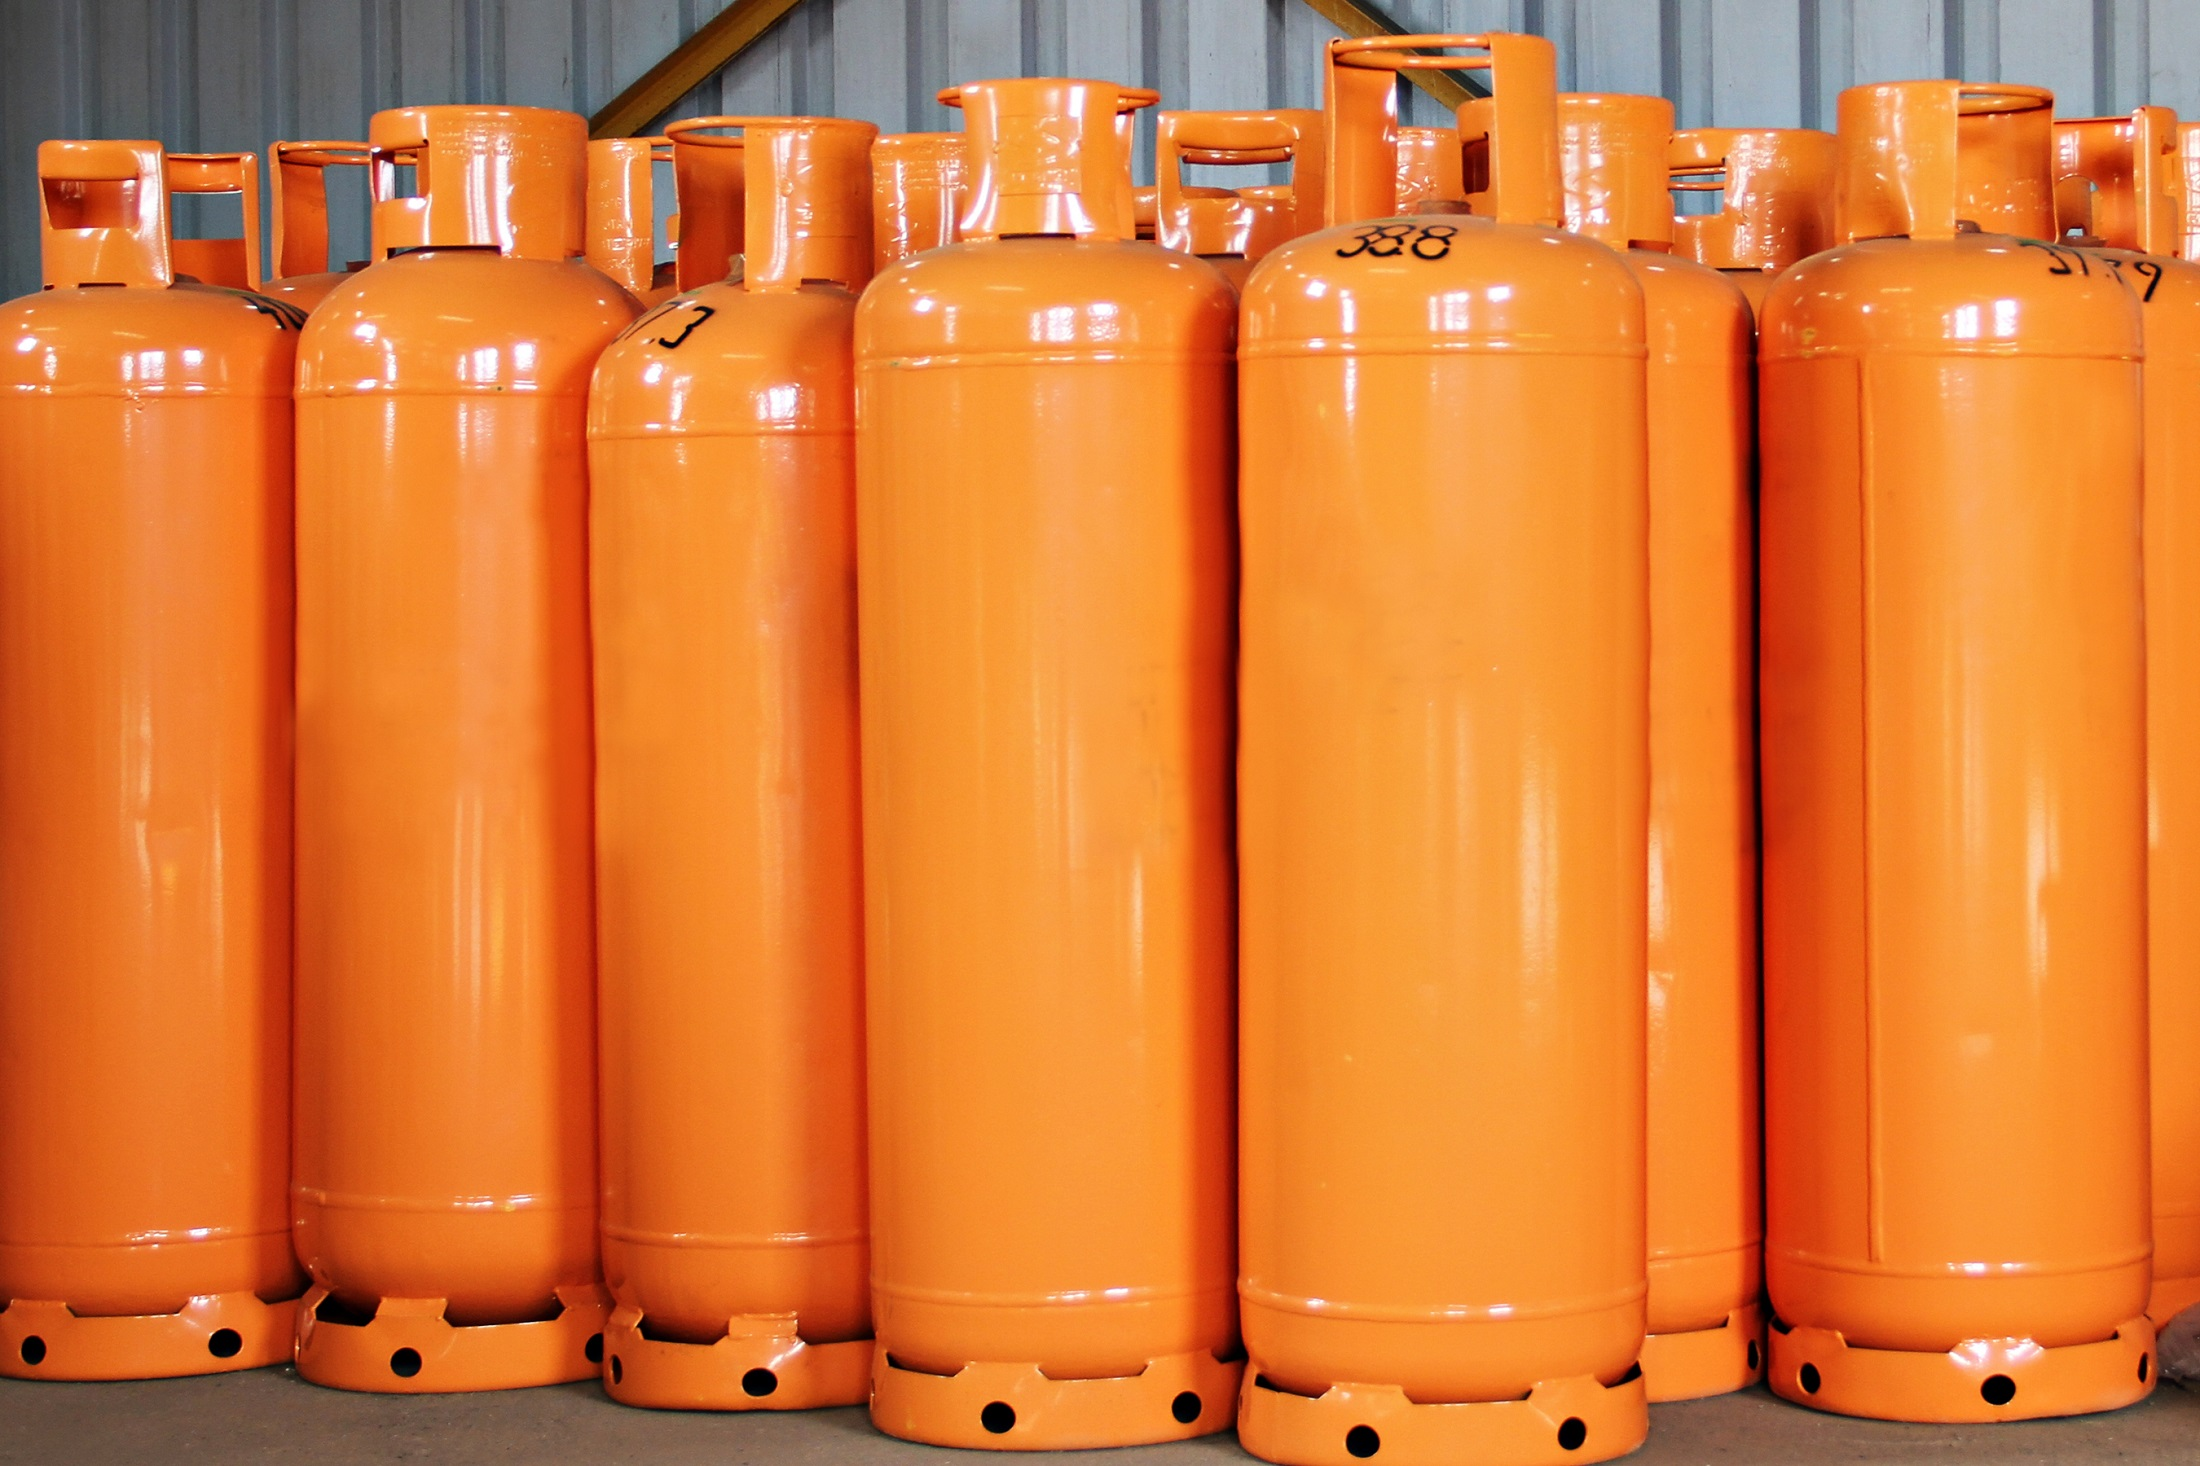 Risks associated with the different classes of dangerous gases